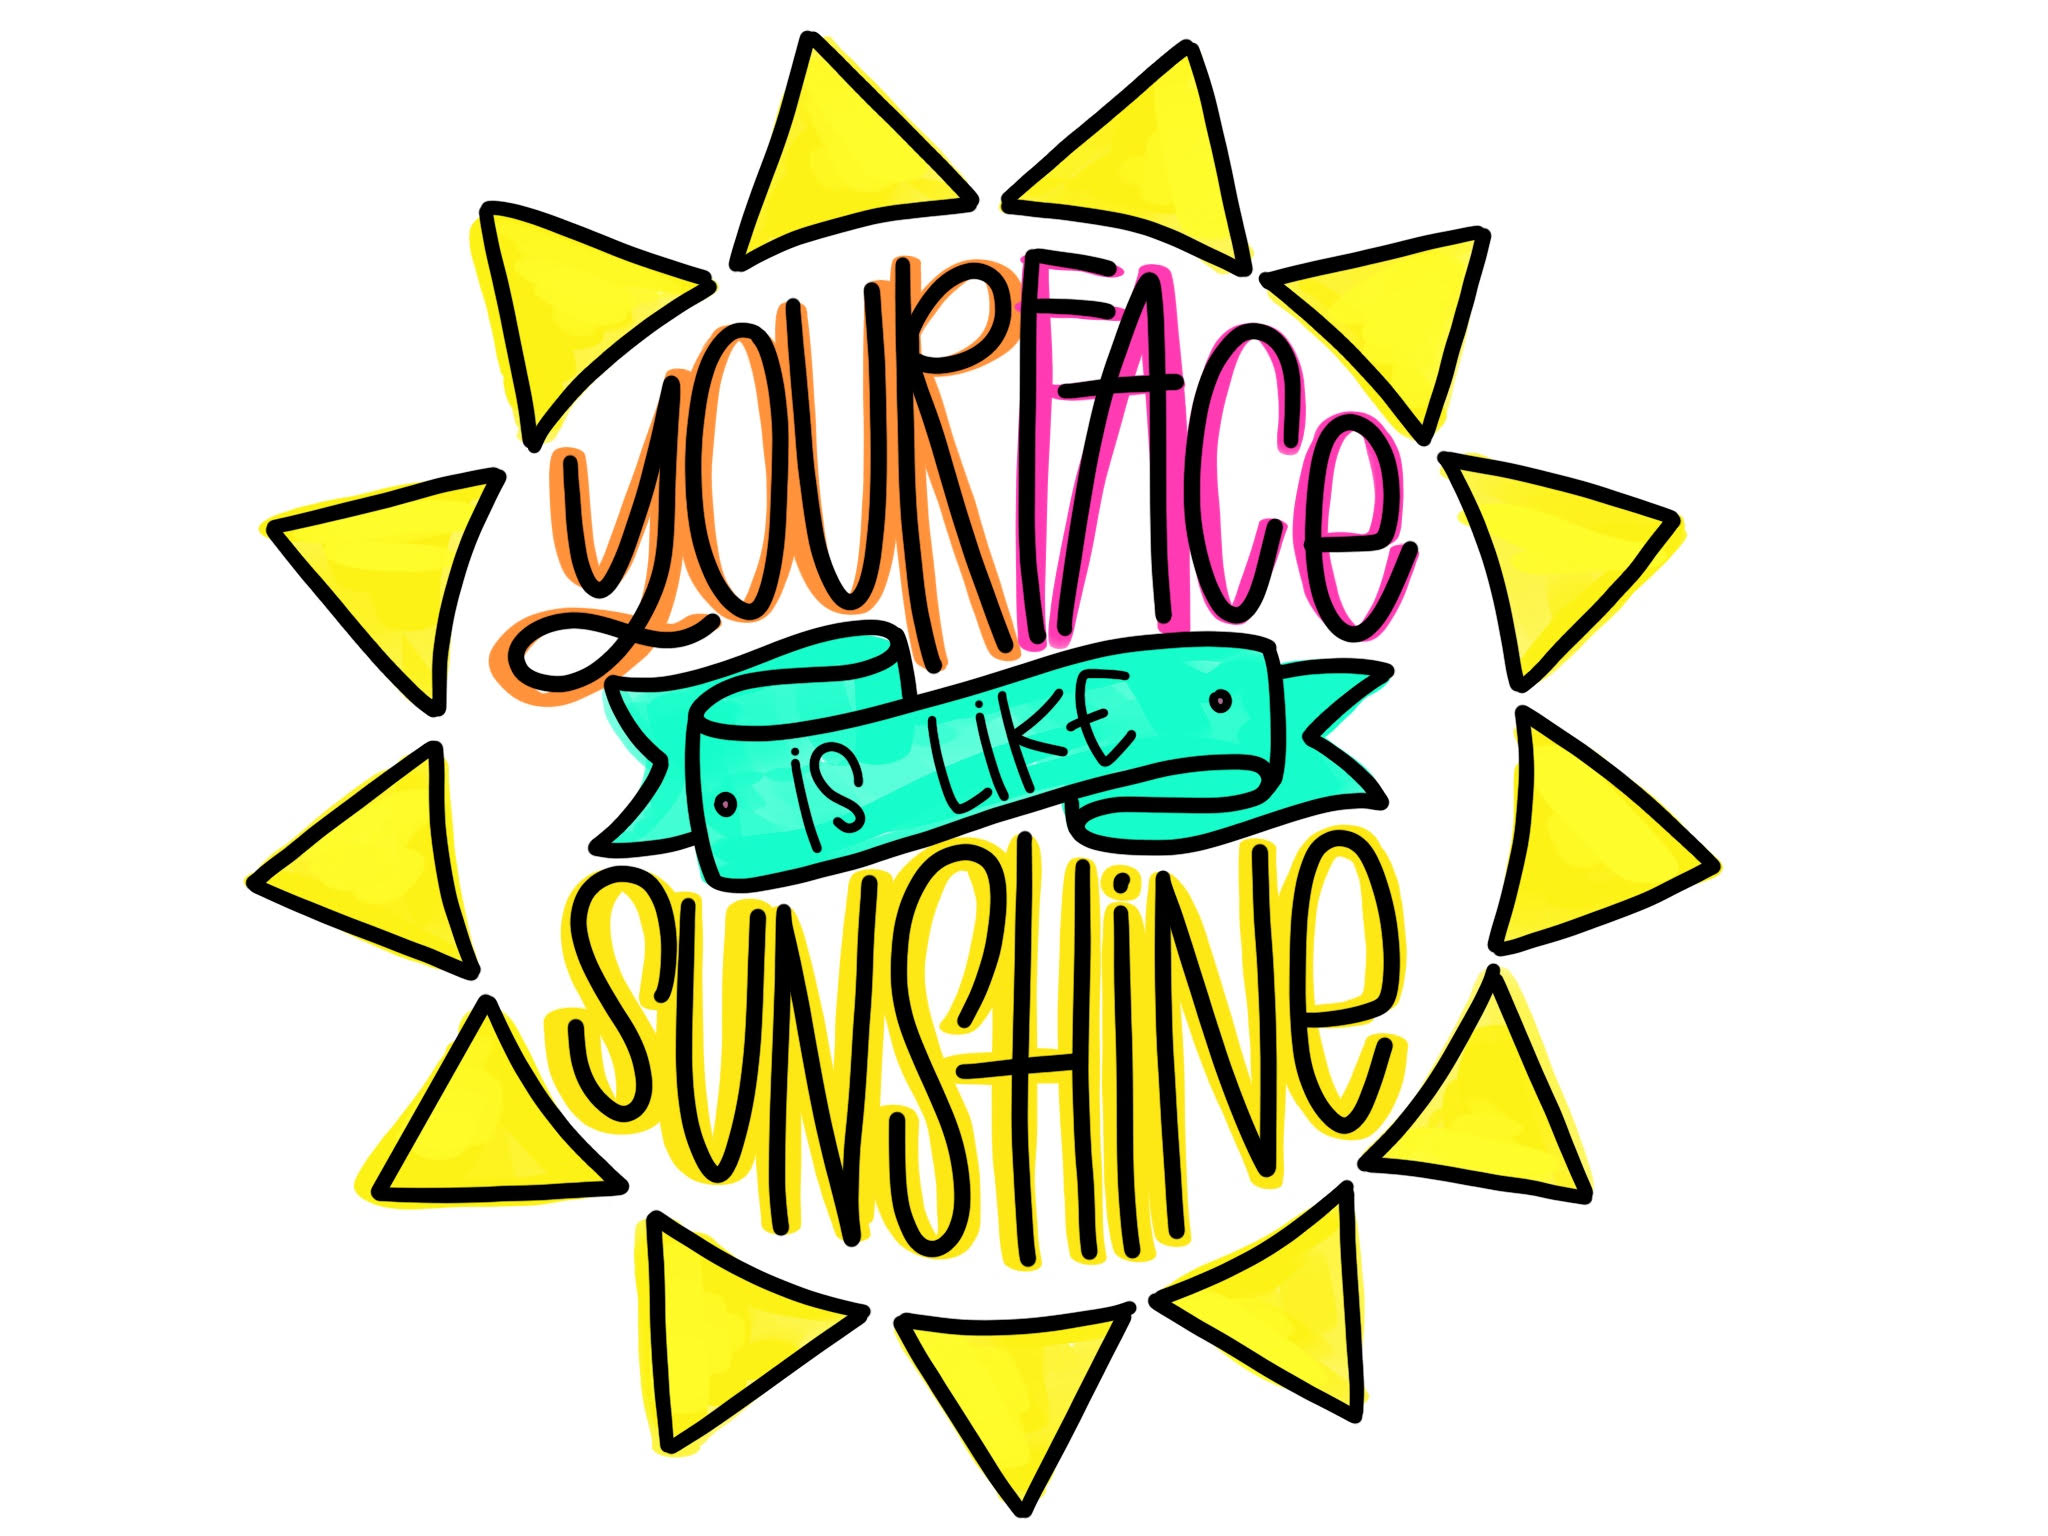 One of four free printables I created for Valentine's day this year - because your face really is like sunshine.